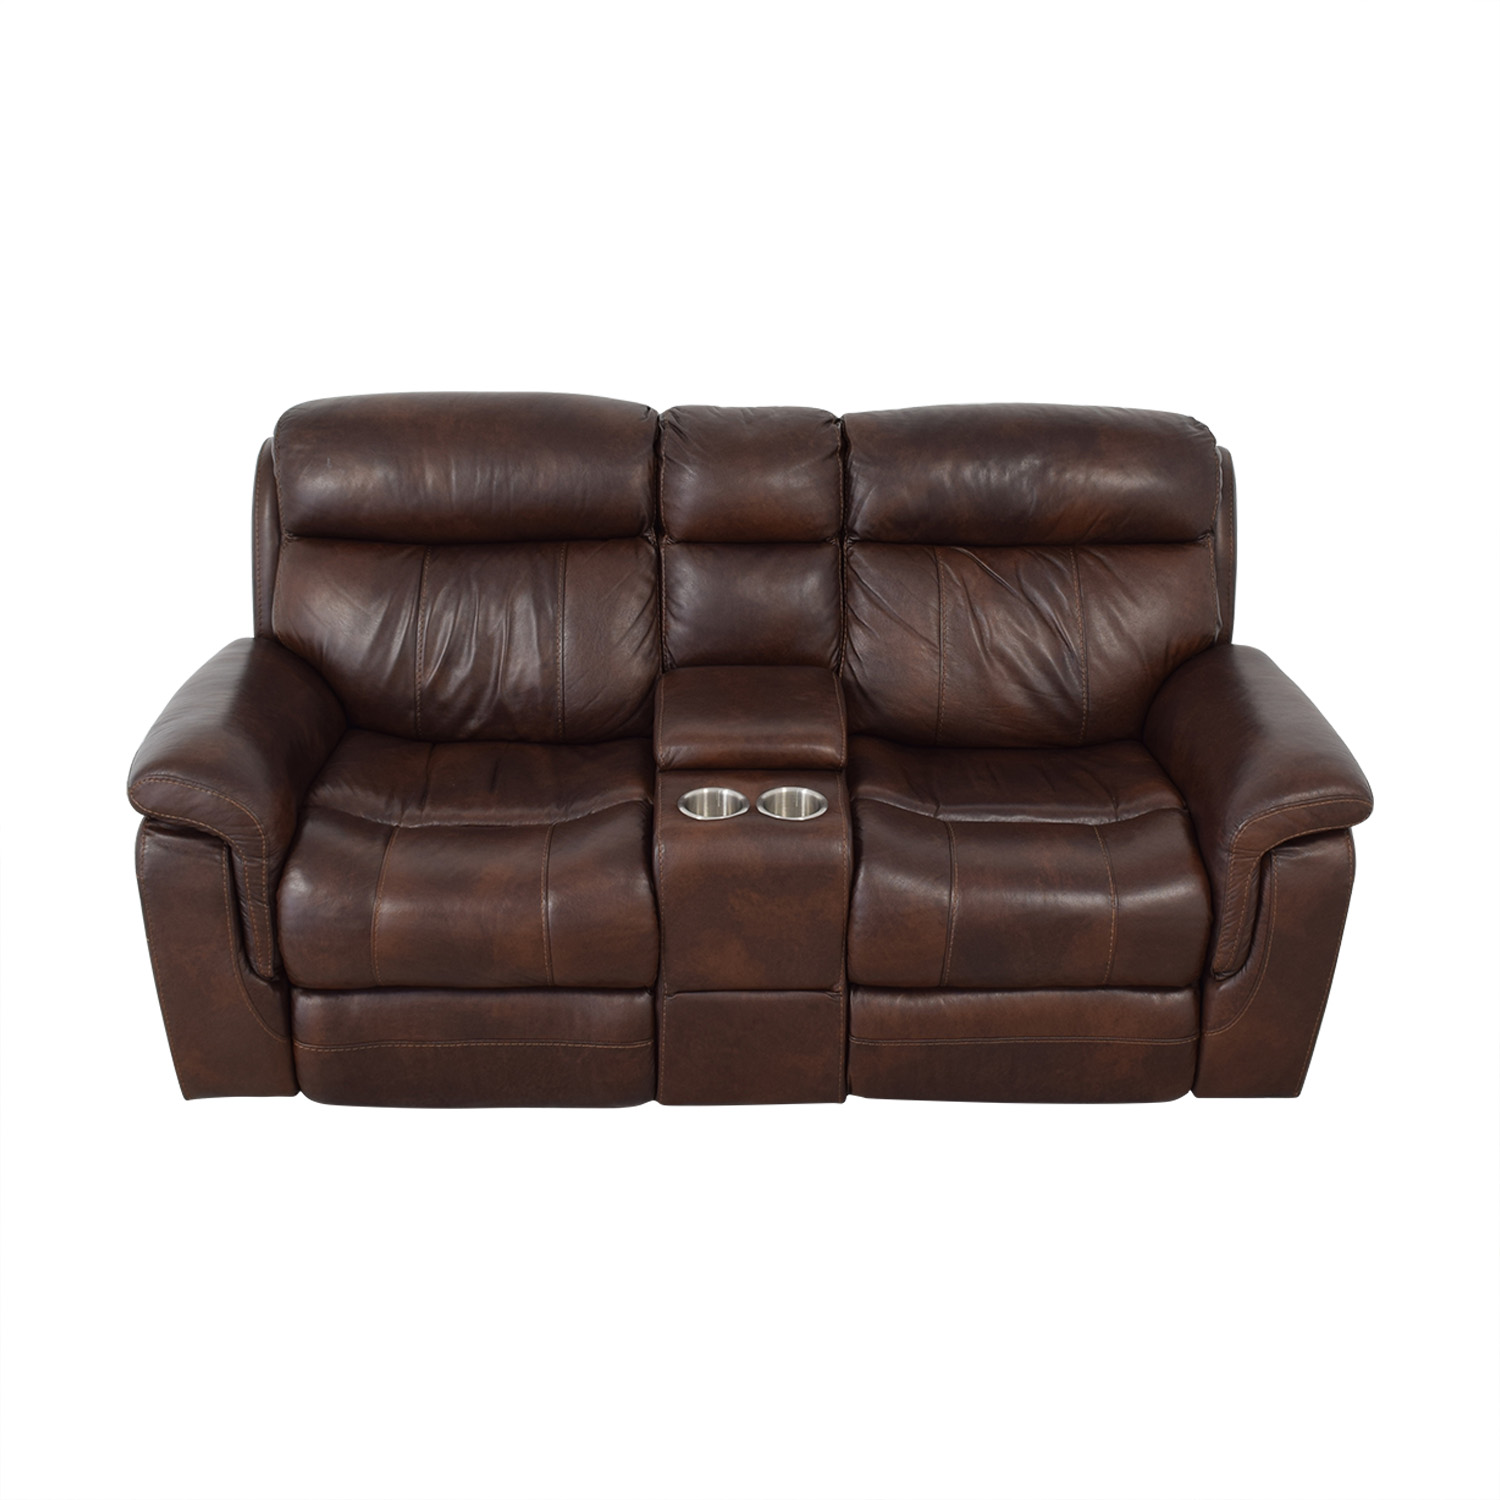 Accent Chairs At Costco 65 Off Costco Costco Davis Two Piece Power Recliner Sofas